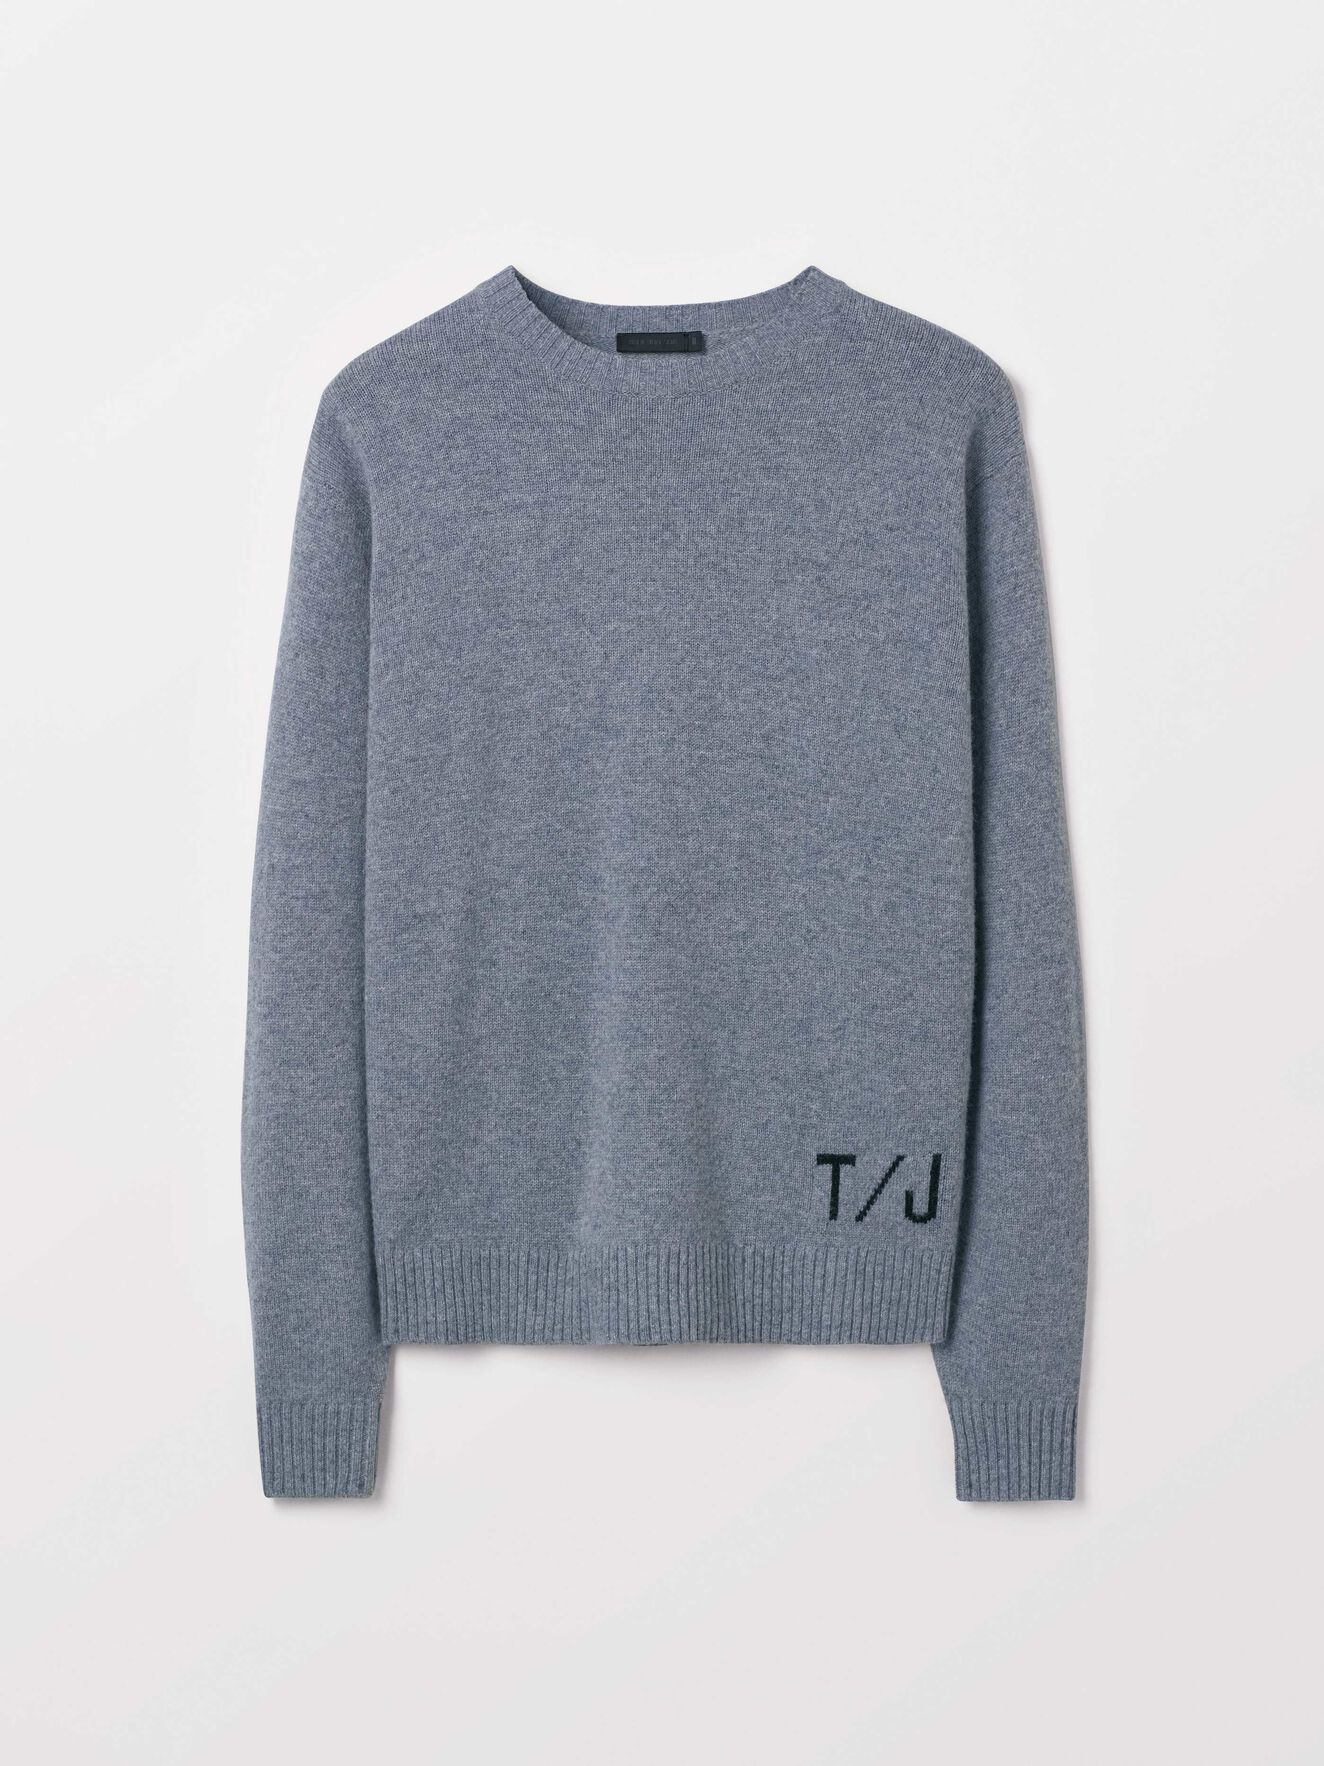 Saif Pullover in Med Grey Mel from Tiger of Sweden